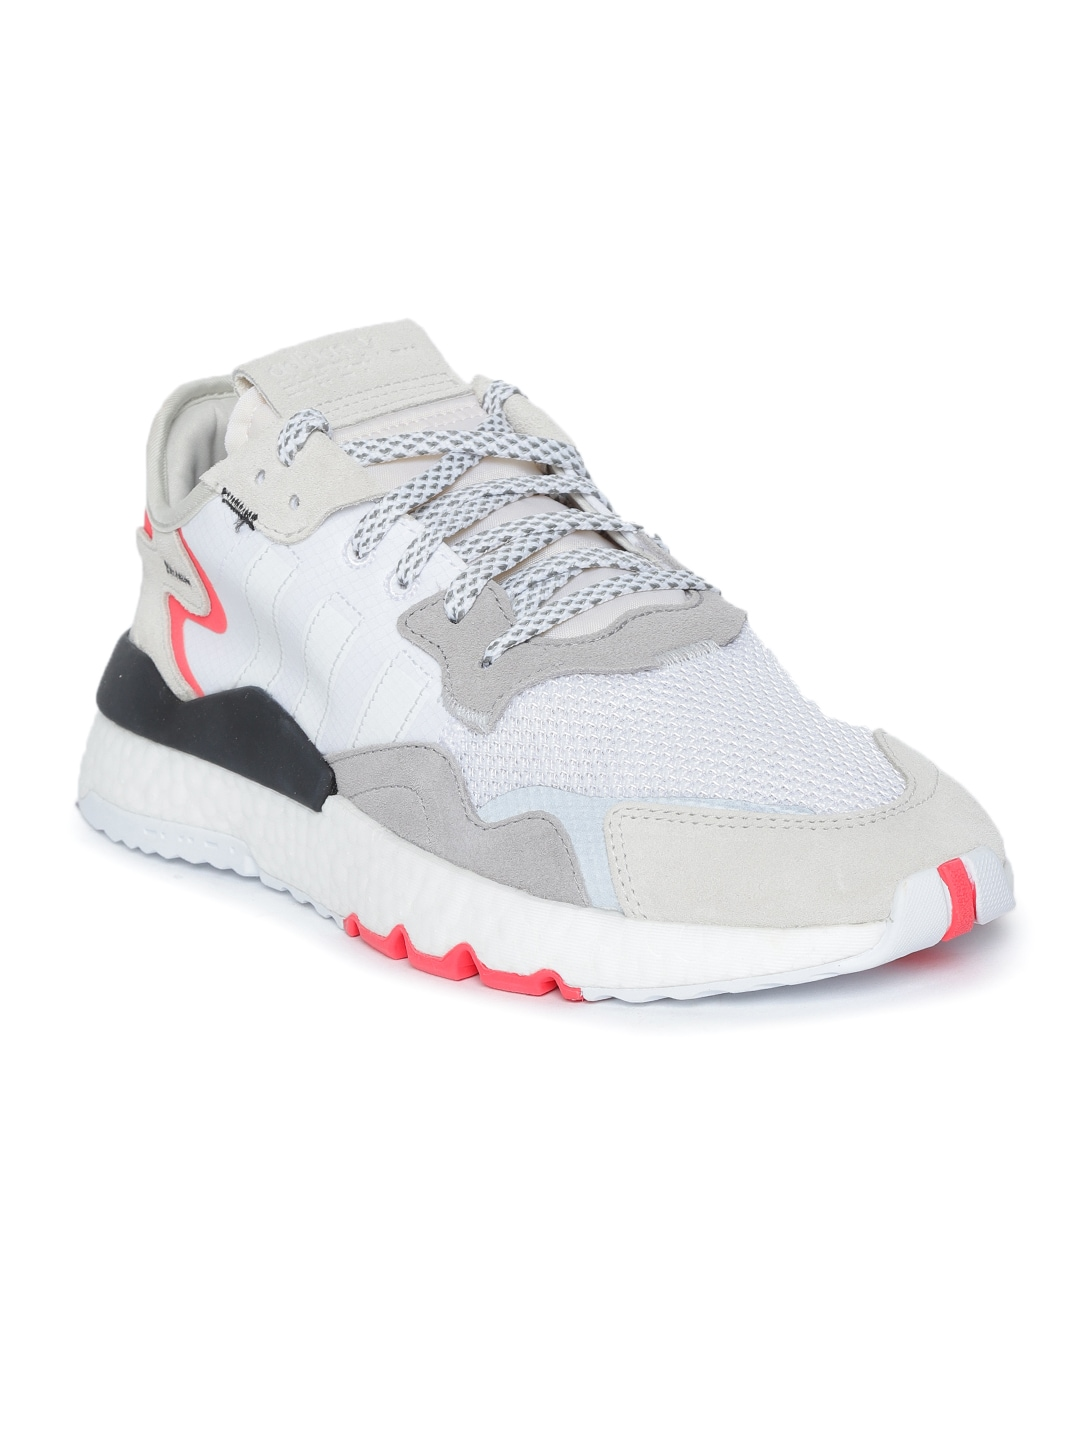 buy popular 9fd98 cafd3 Adidas Shoes - Buy Adidas Shoes for Men   Women Online - Myntra